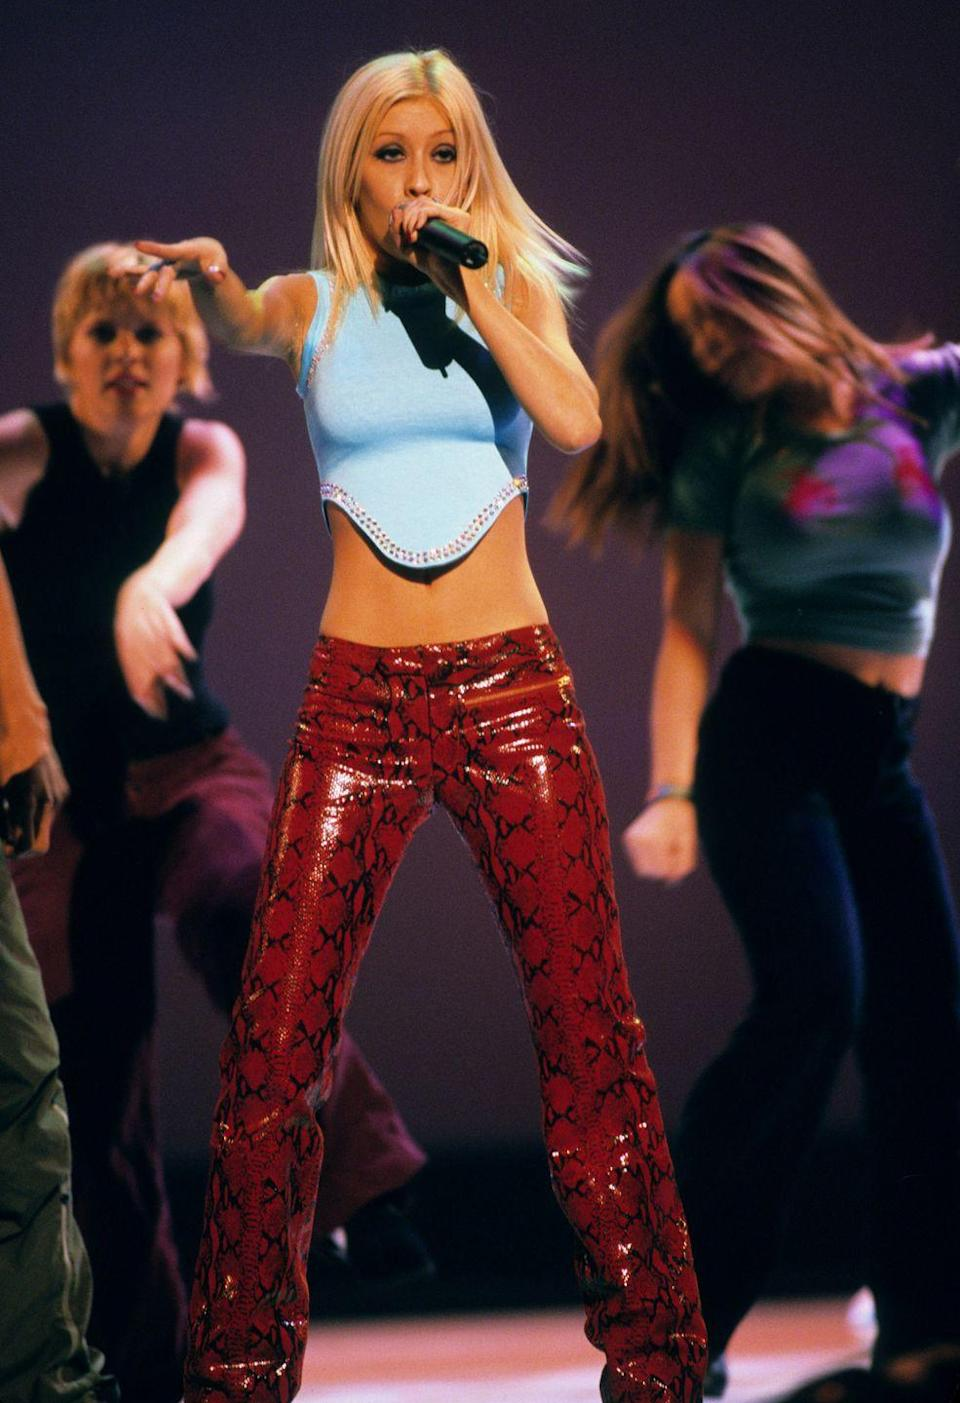 <p>When I was in 5th grade, I begged my mom to buy me a pair of burgundy pleather pants. She did (after much convincing) and even though I never wore them (as mom predicted), they were still one of my favorite things in my closet. </p>